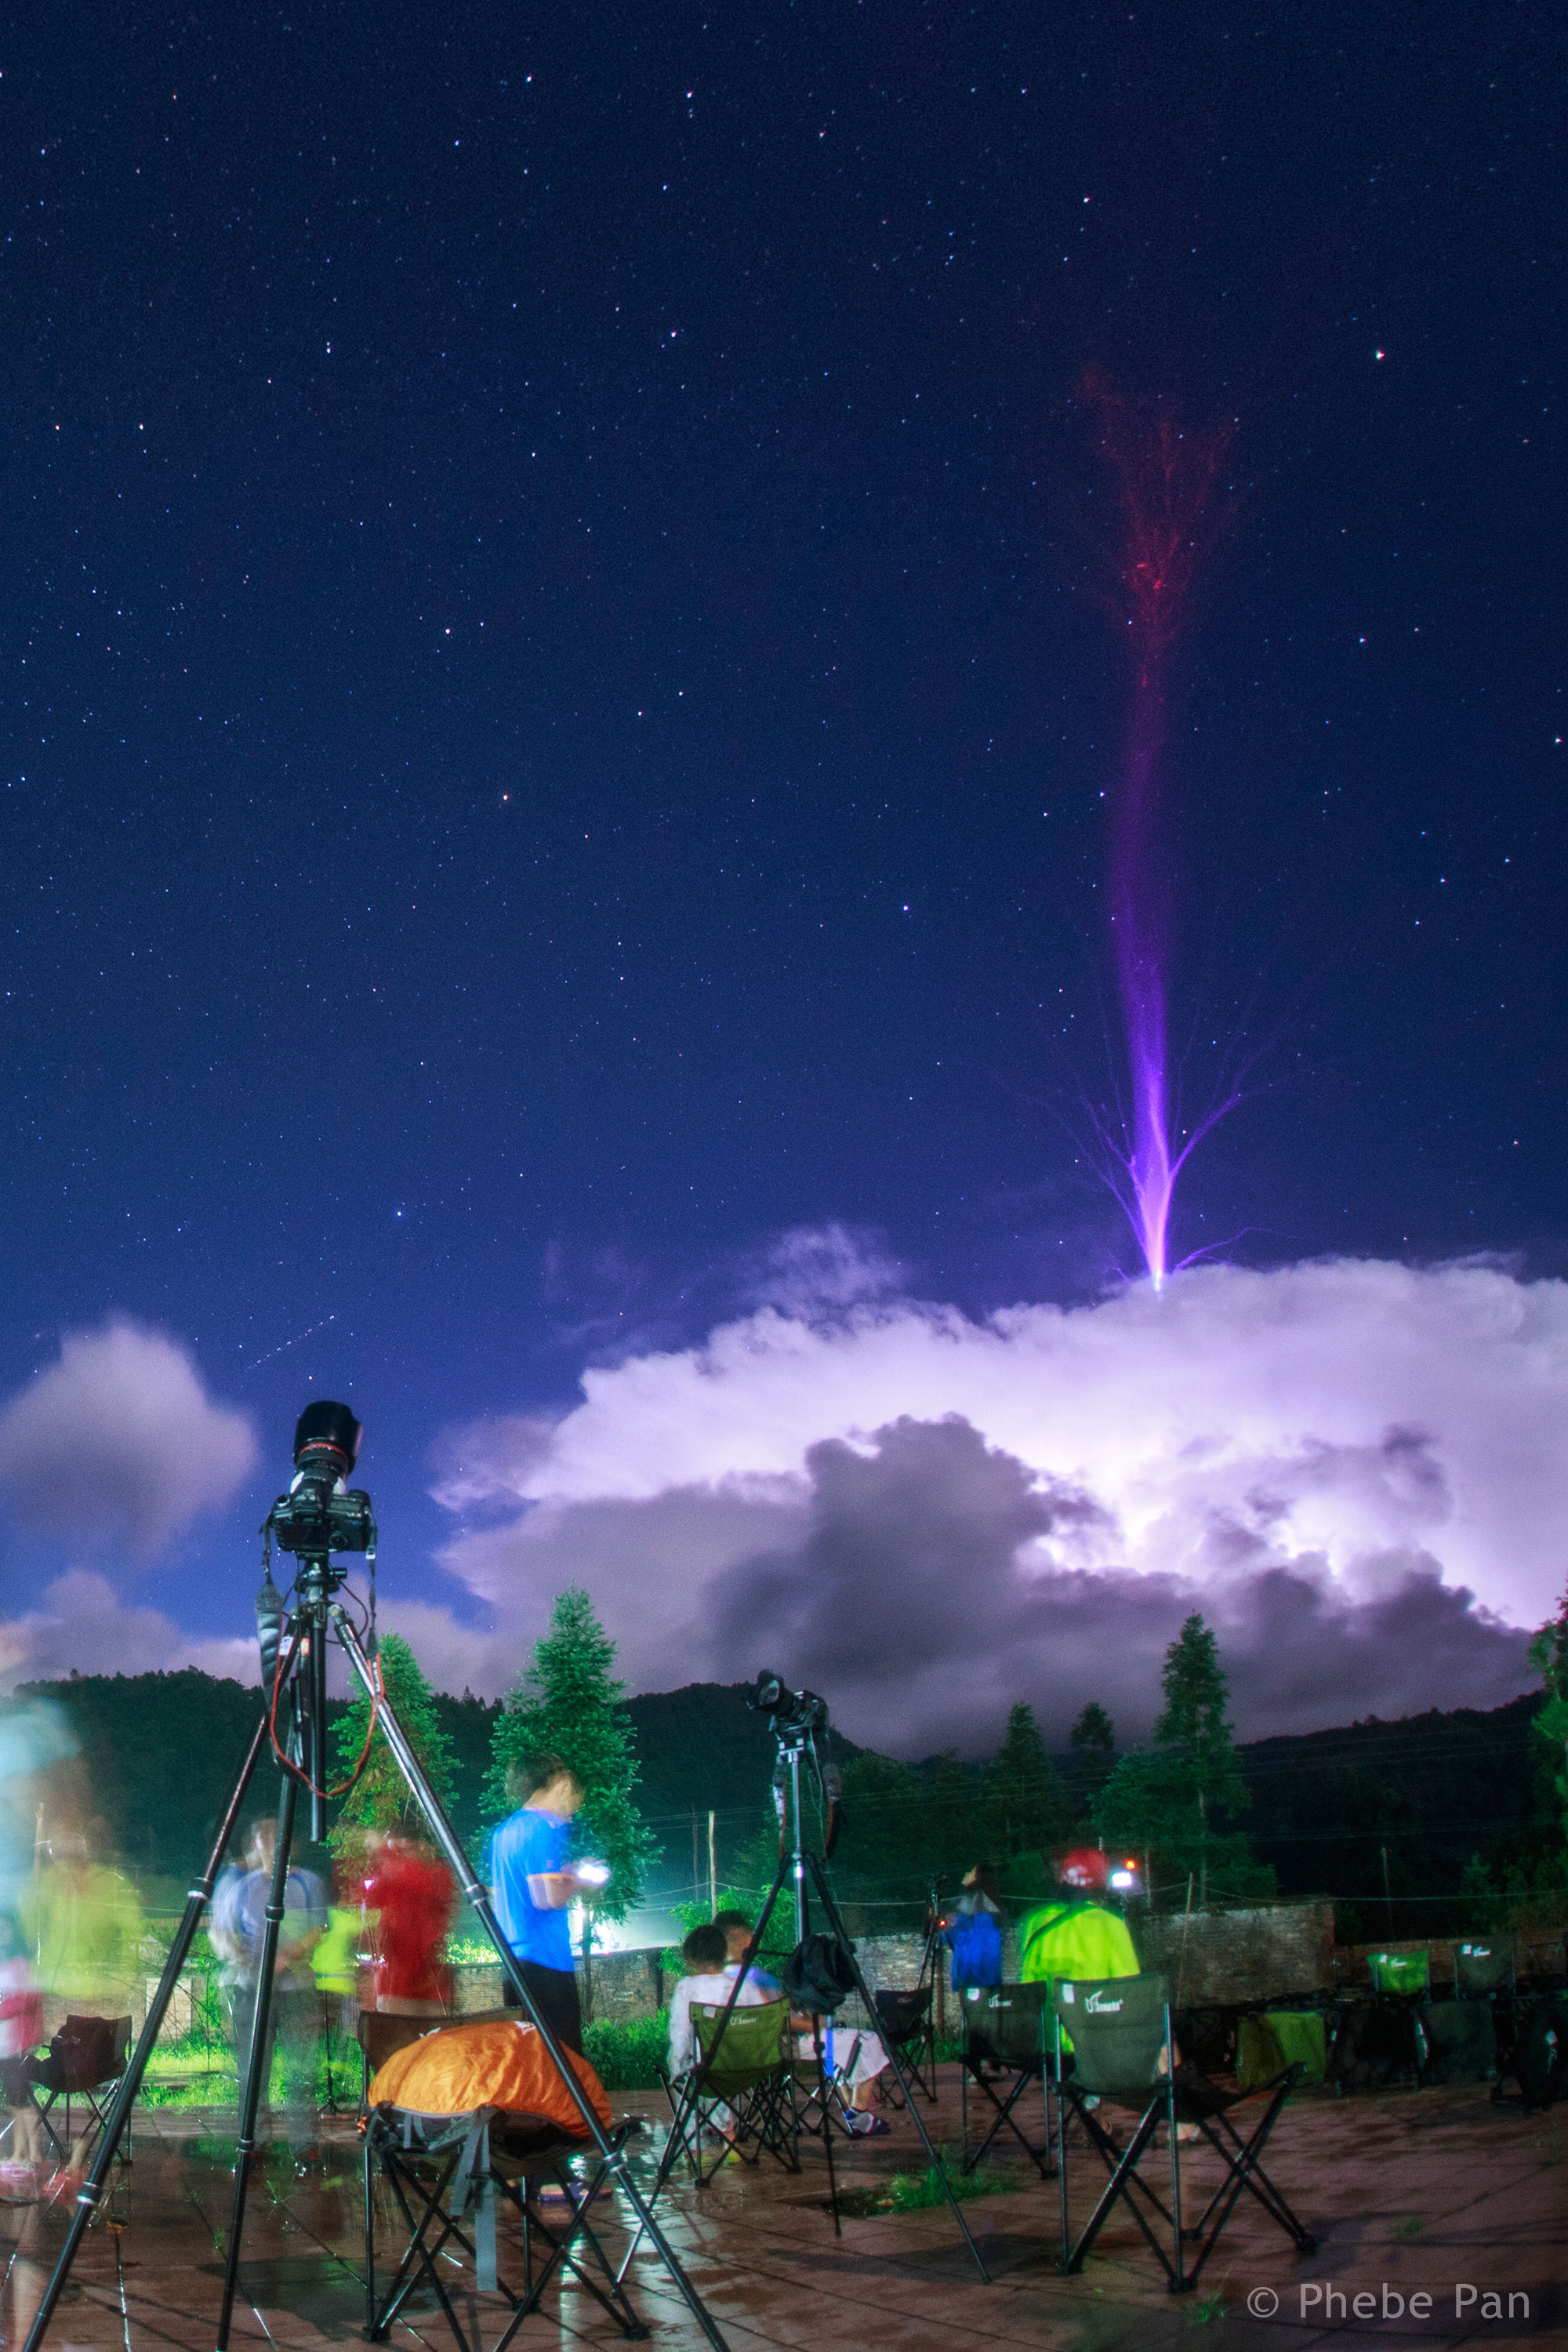 2016 August 23 - Gigantic Jet Lightning over China